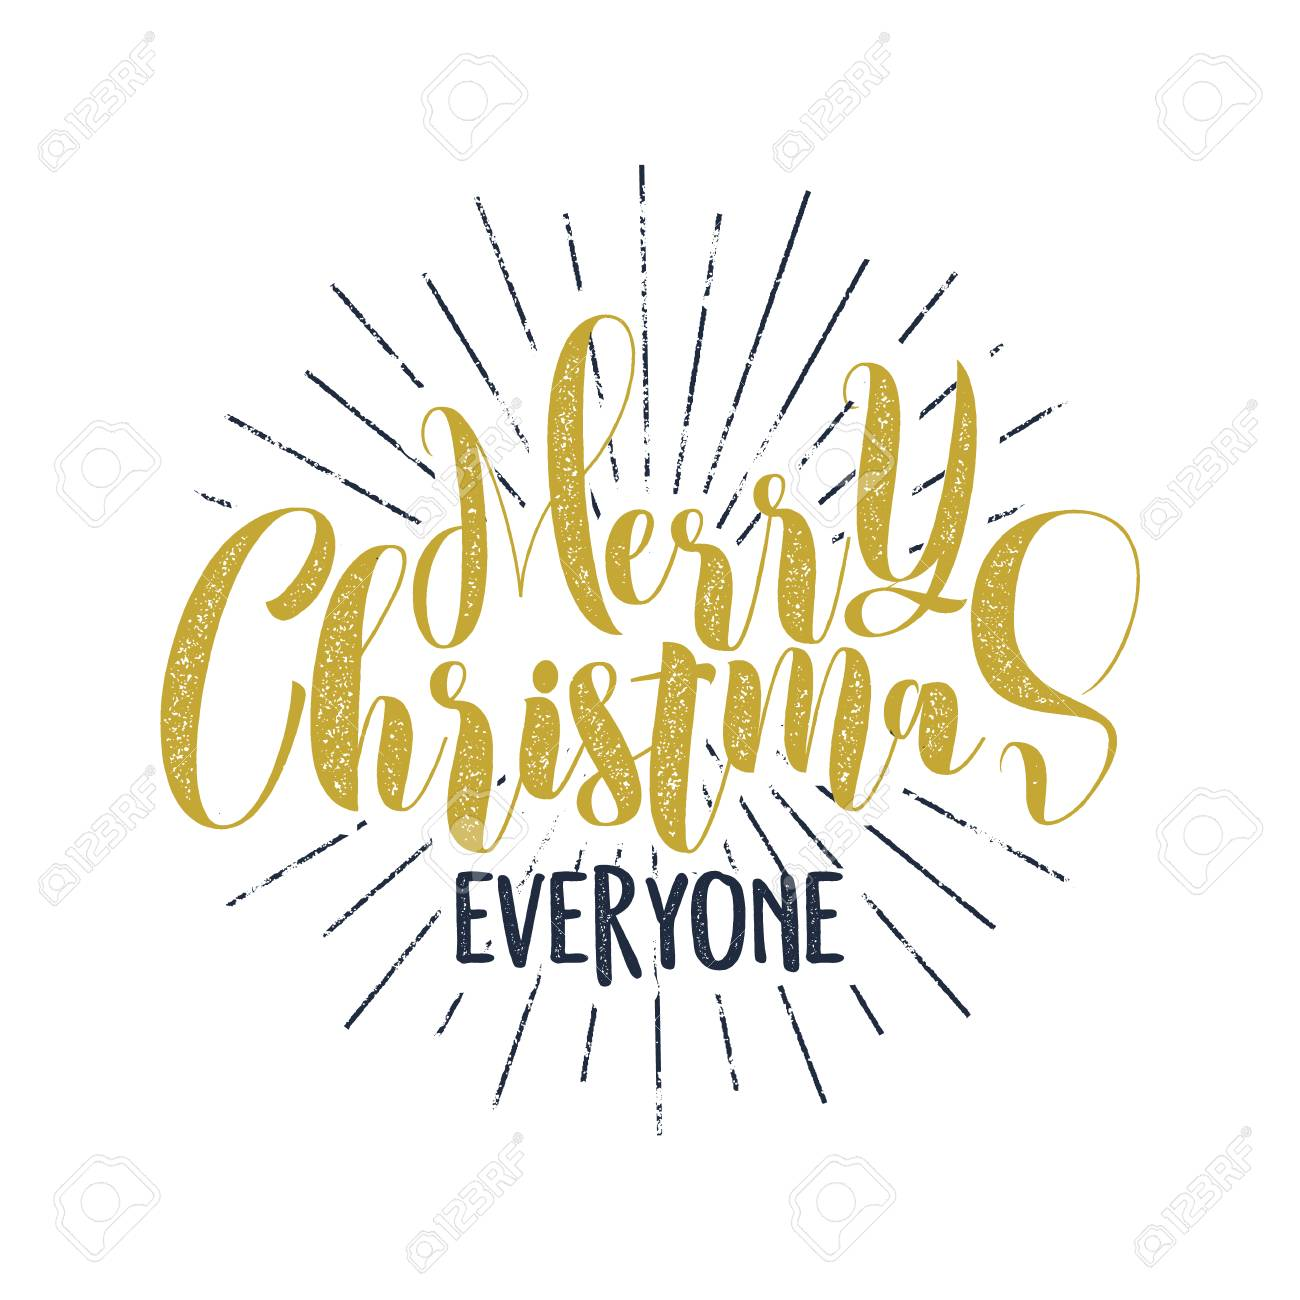 Merry Christmas Everyone Lettering, Holiday Wish, Sayings And ...